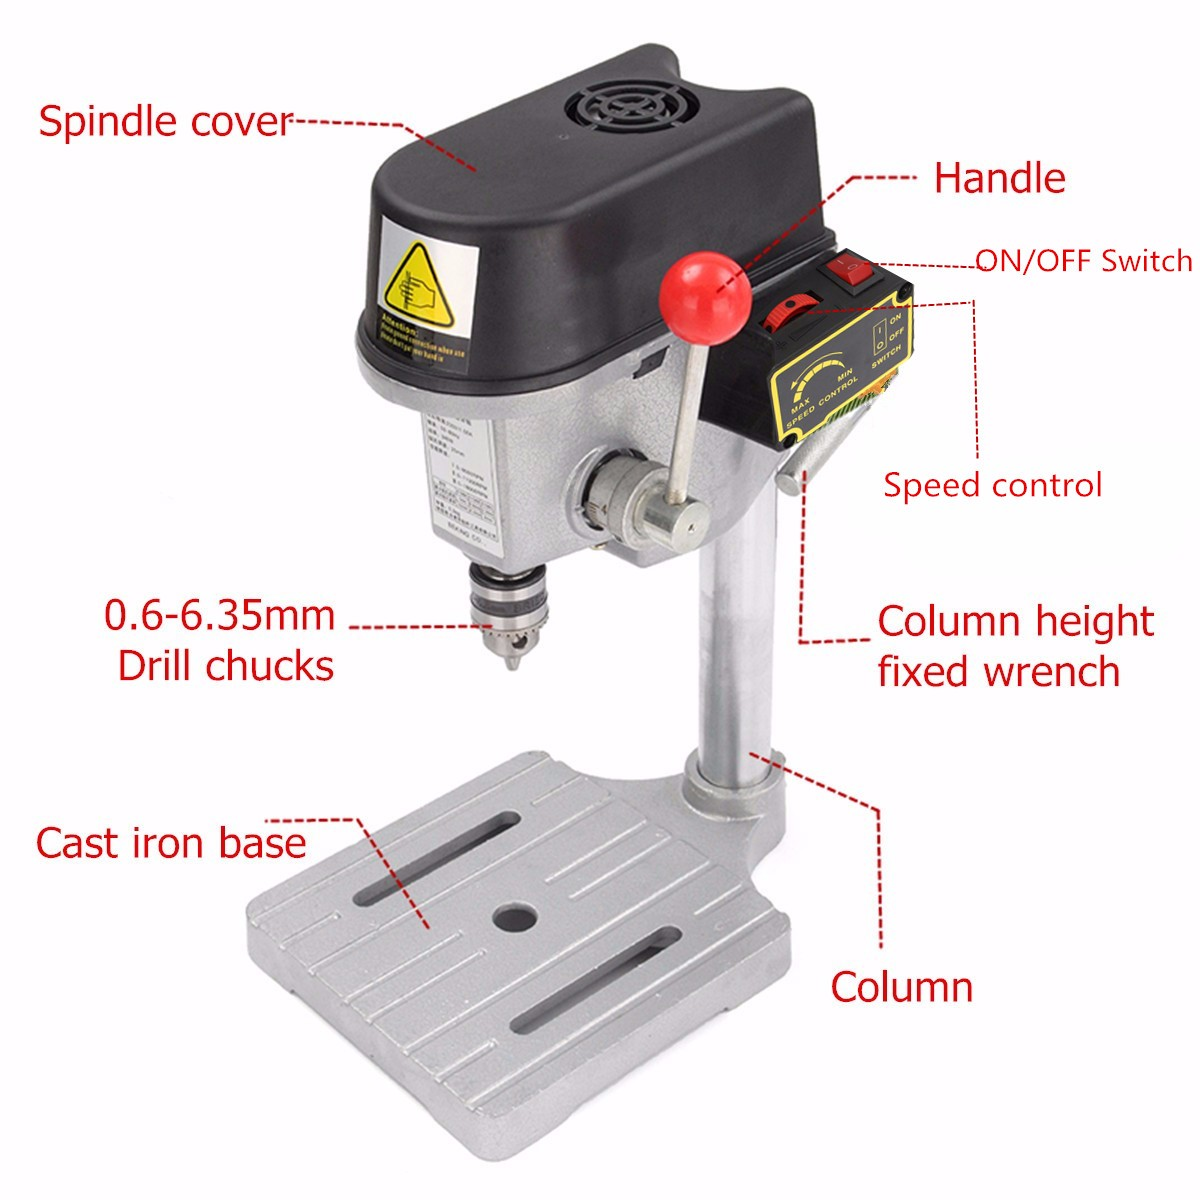 Drillpro 220V 340W Electric Drill Stand Mini Table Top Bench Drill Stand Holder DIY Bracket Fixed Frame